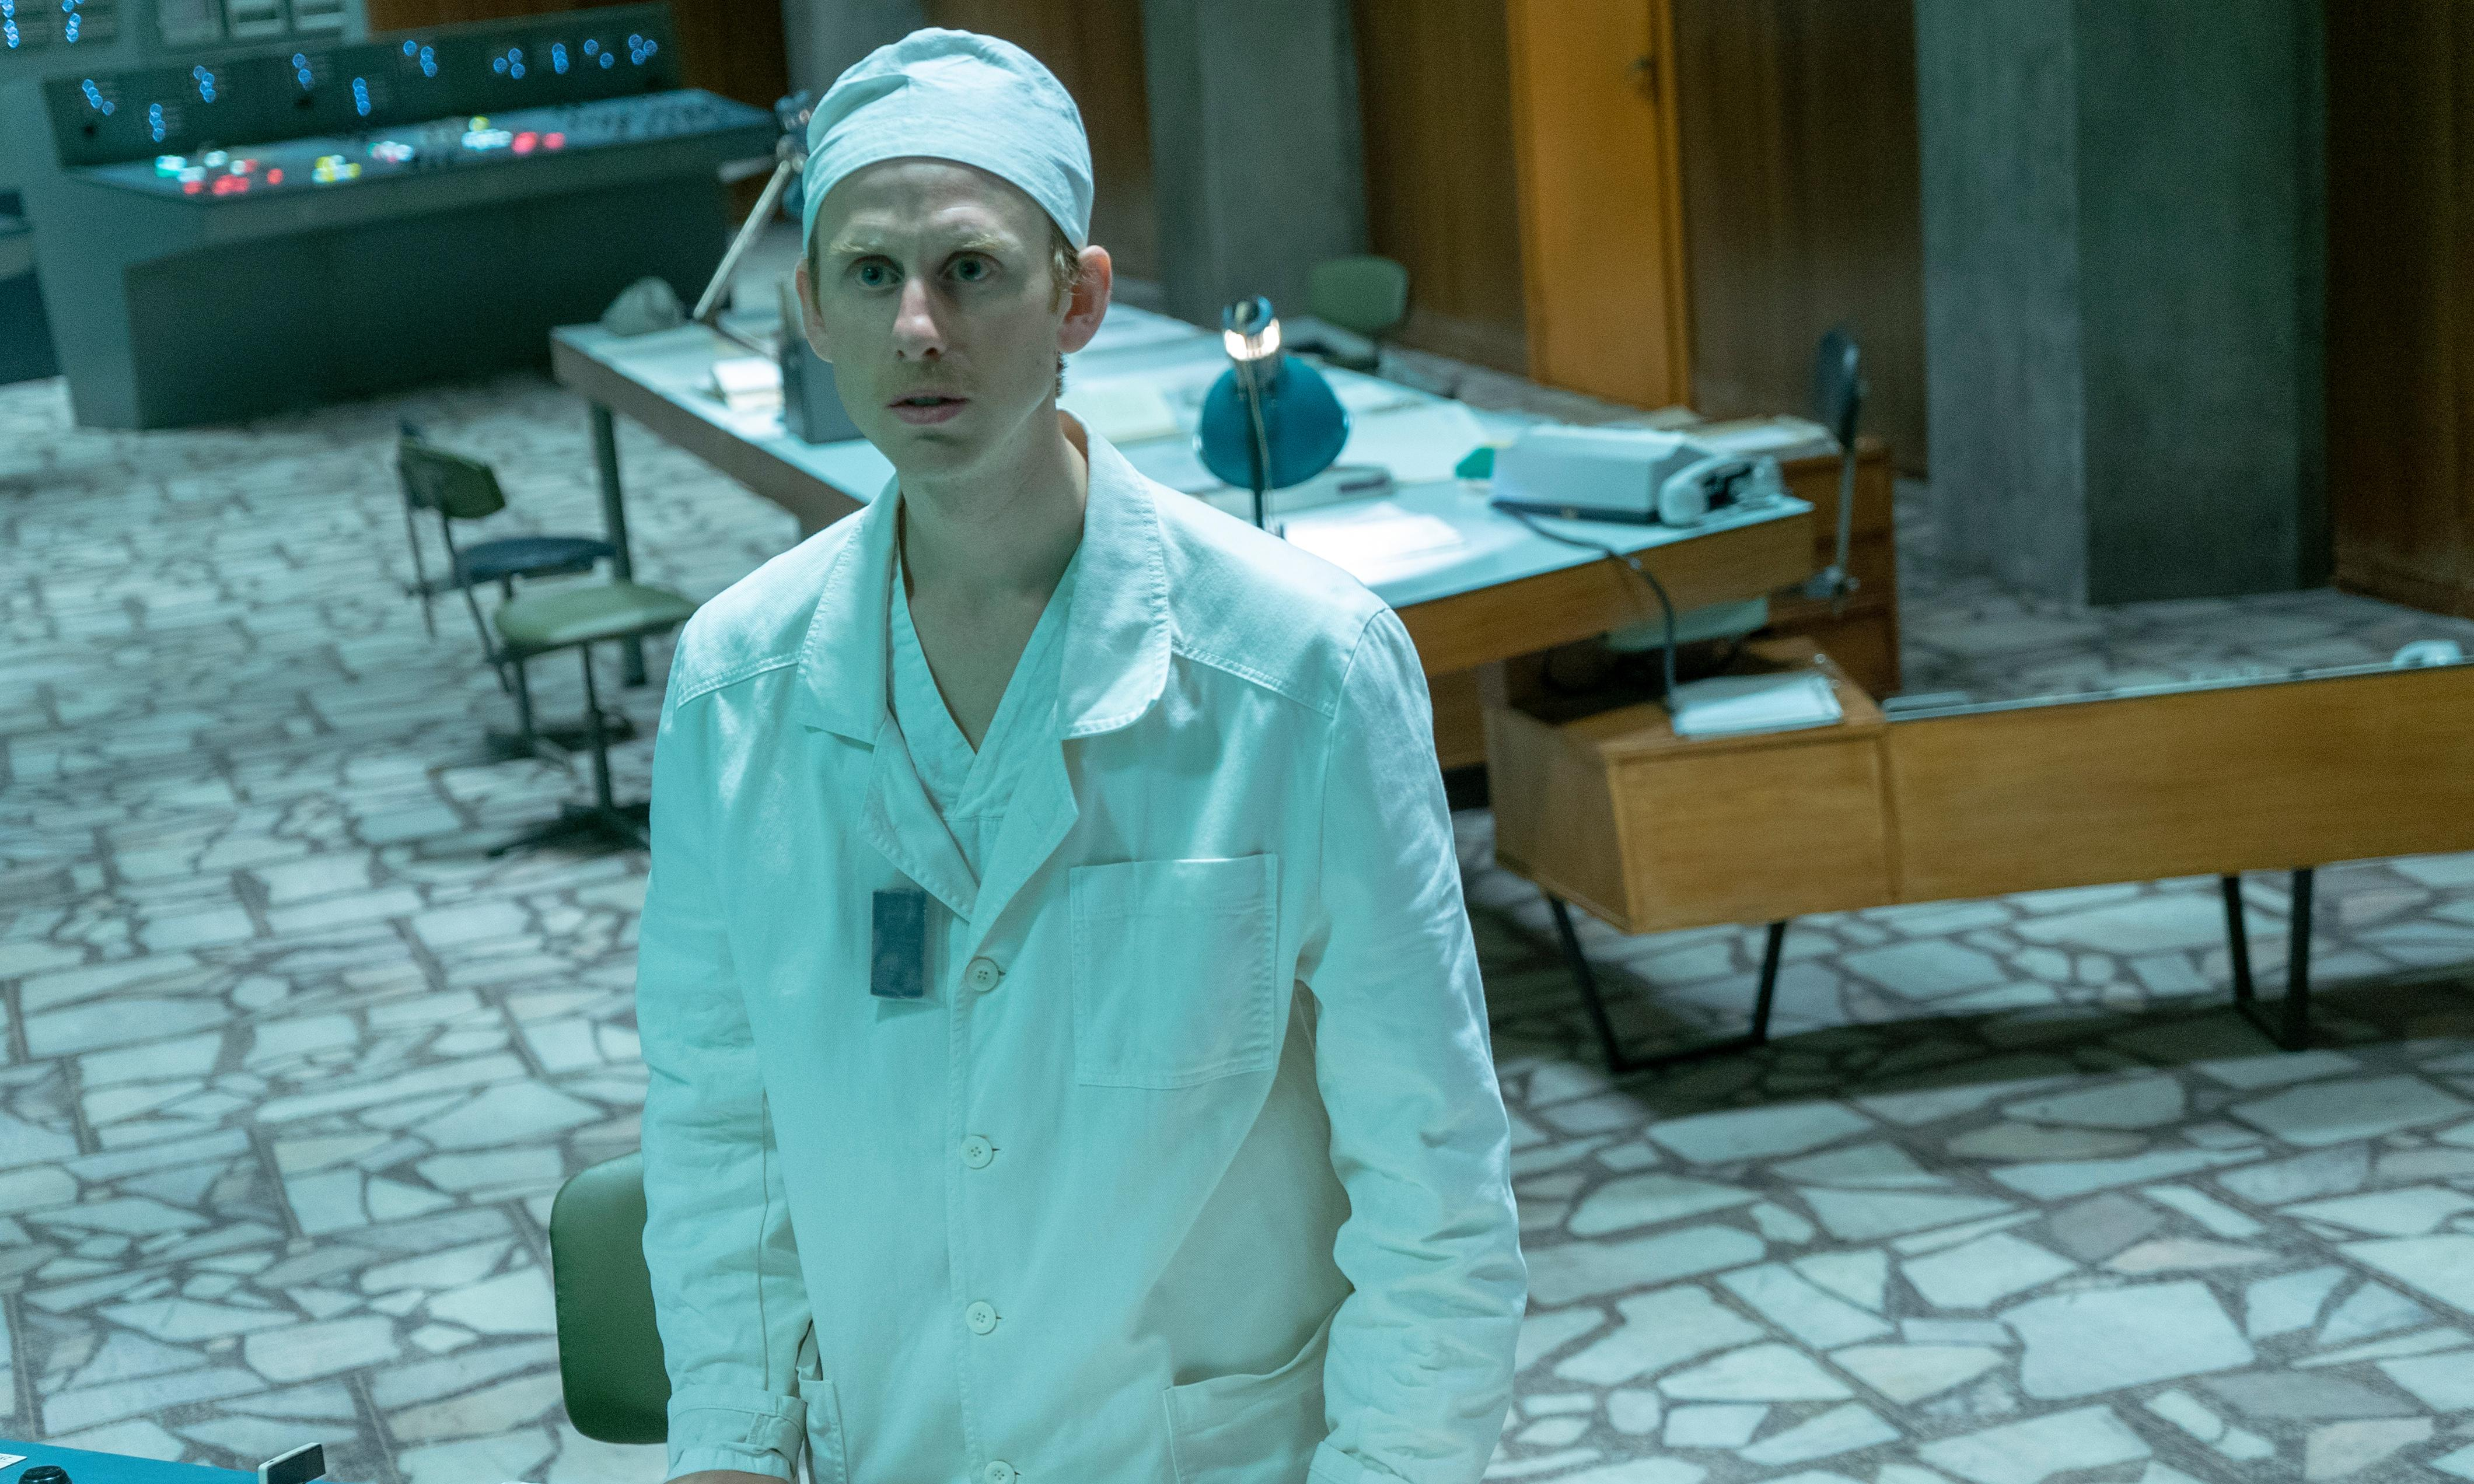 Chernobyl finale review – when the dust settles, it will be considered a classic